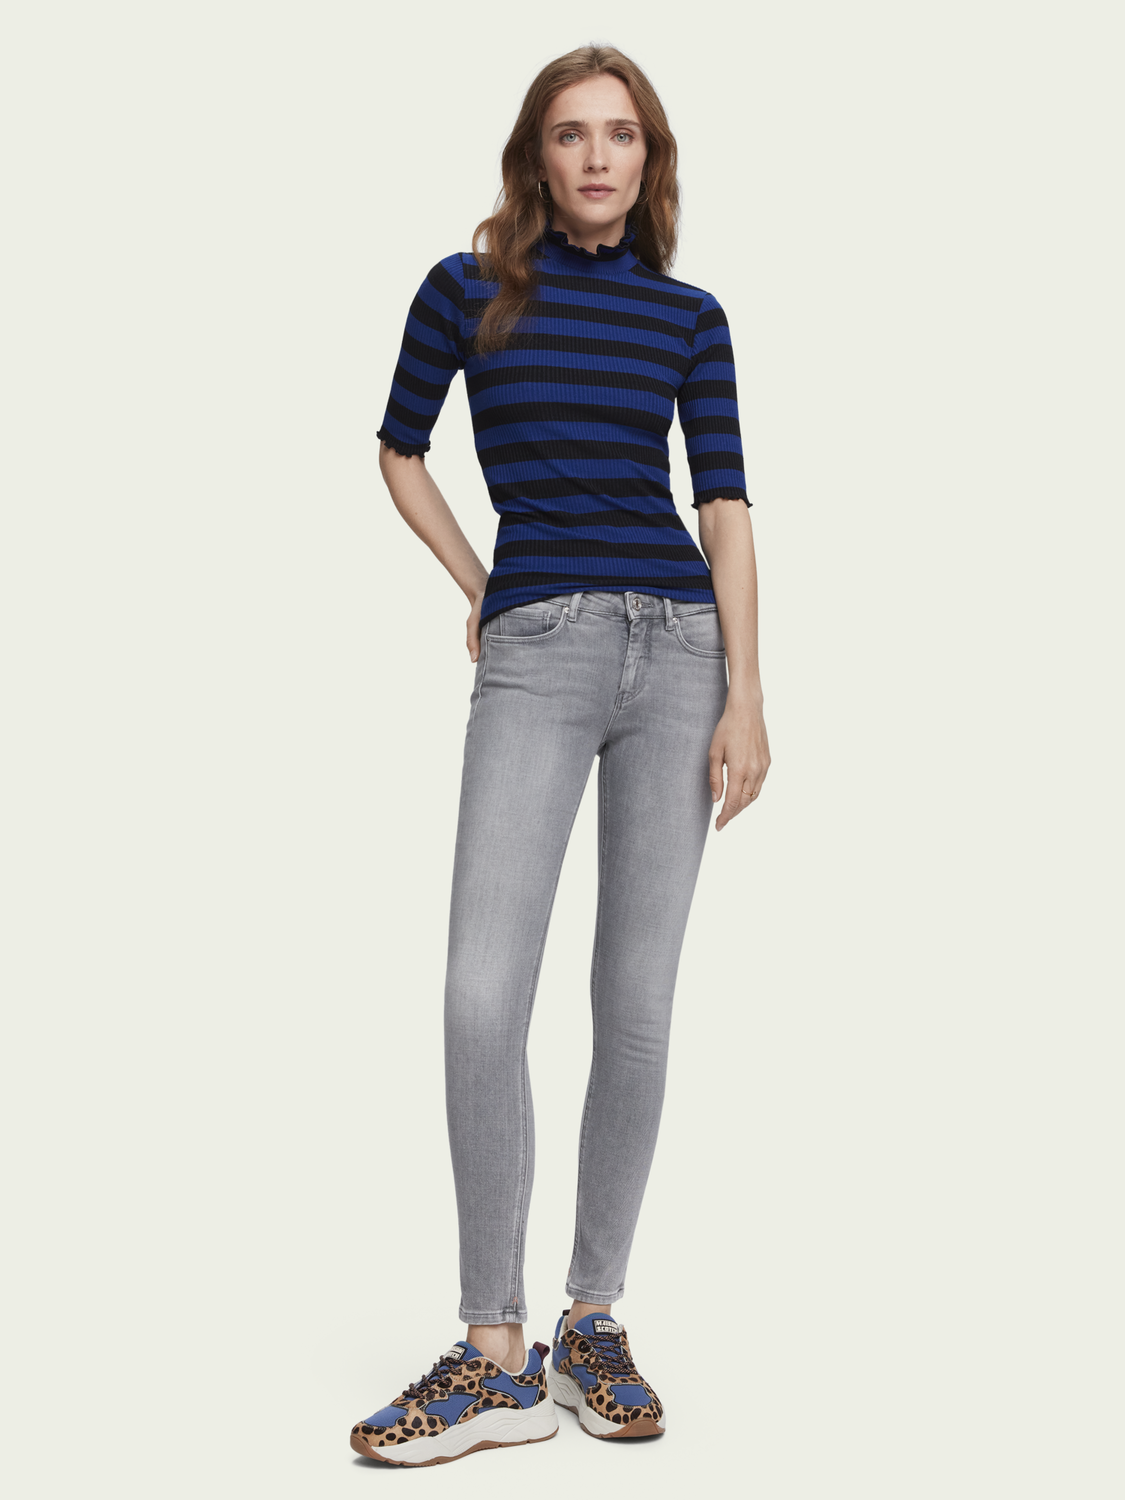 Dames La Bohemienne - Rough Rocks Light | Medium-rise skinny fit jeans